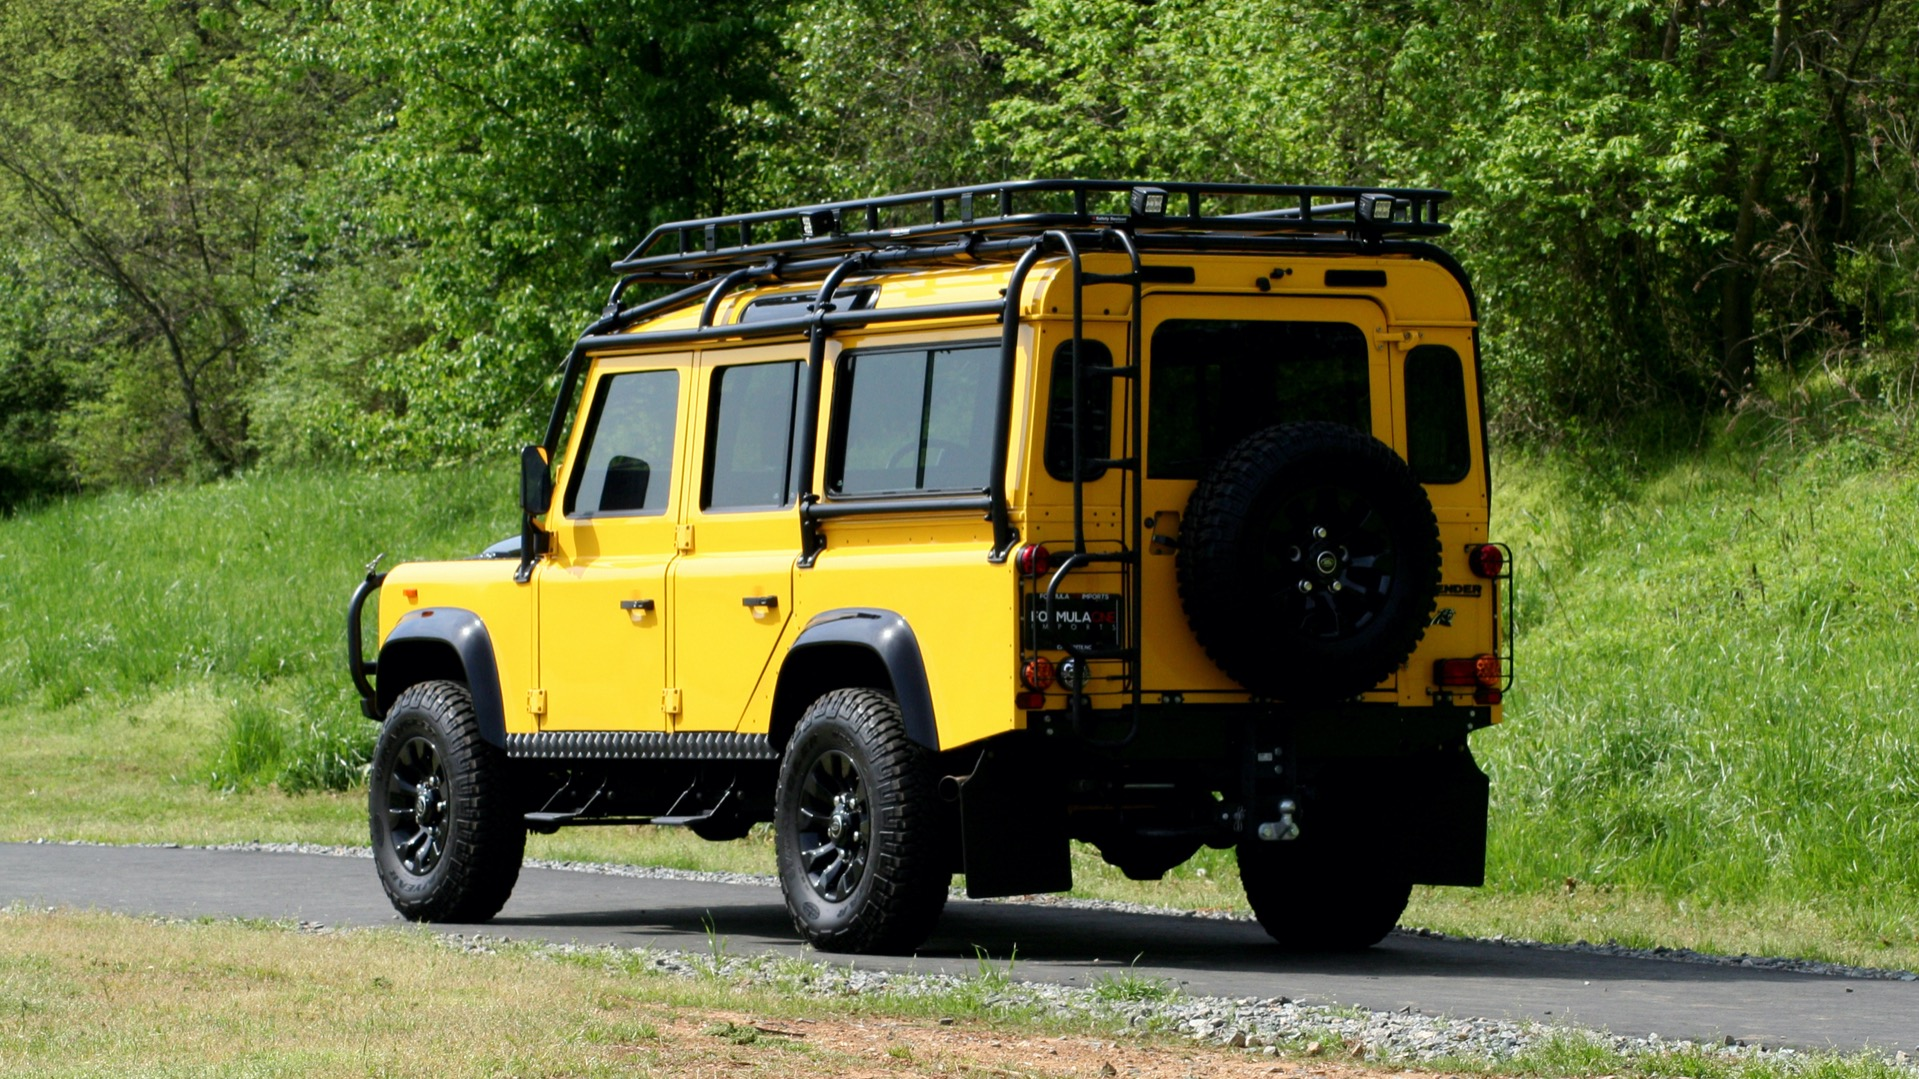 Used 1989 Land Rover Defender 110 4x4 Custom / Fully Restored / Fuel Injected V8 / 5-Spd Man for sale $60,000 at Formula Imports in Charlotte NC 28227 7